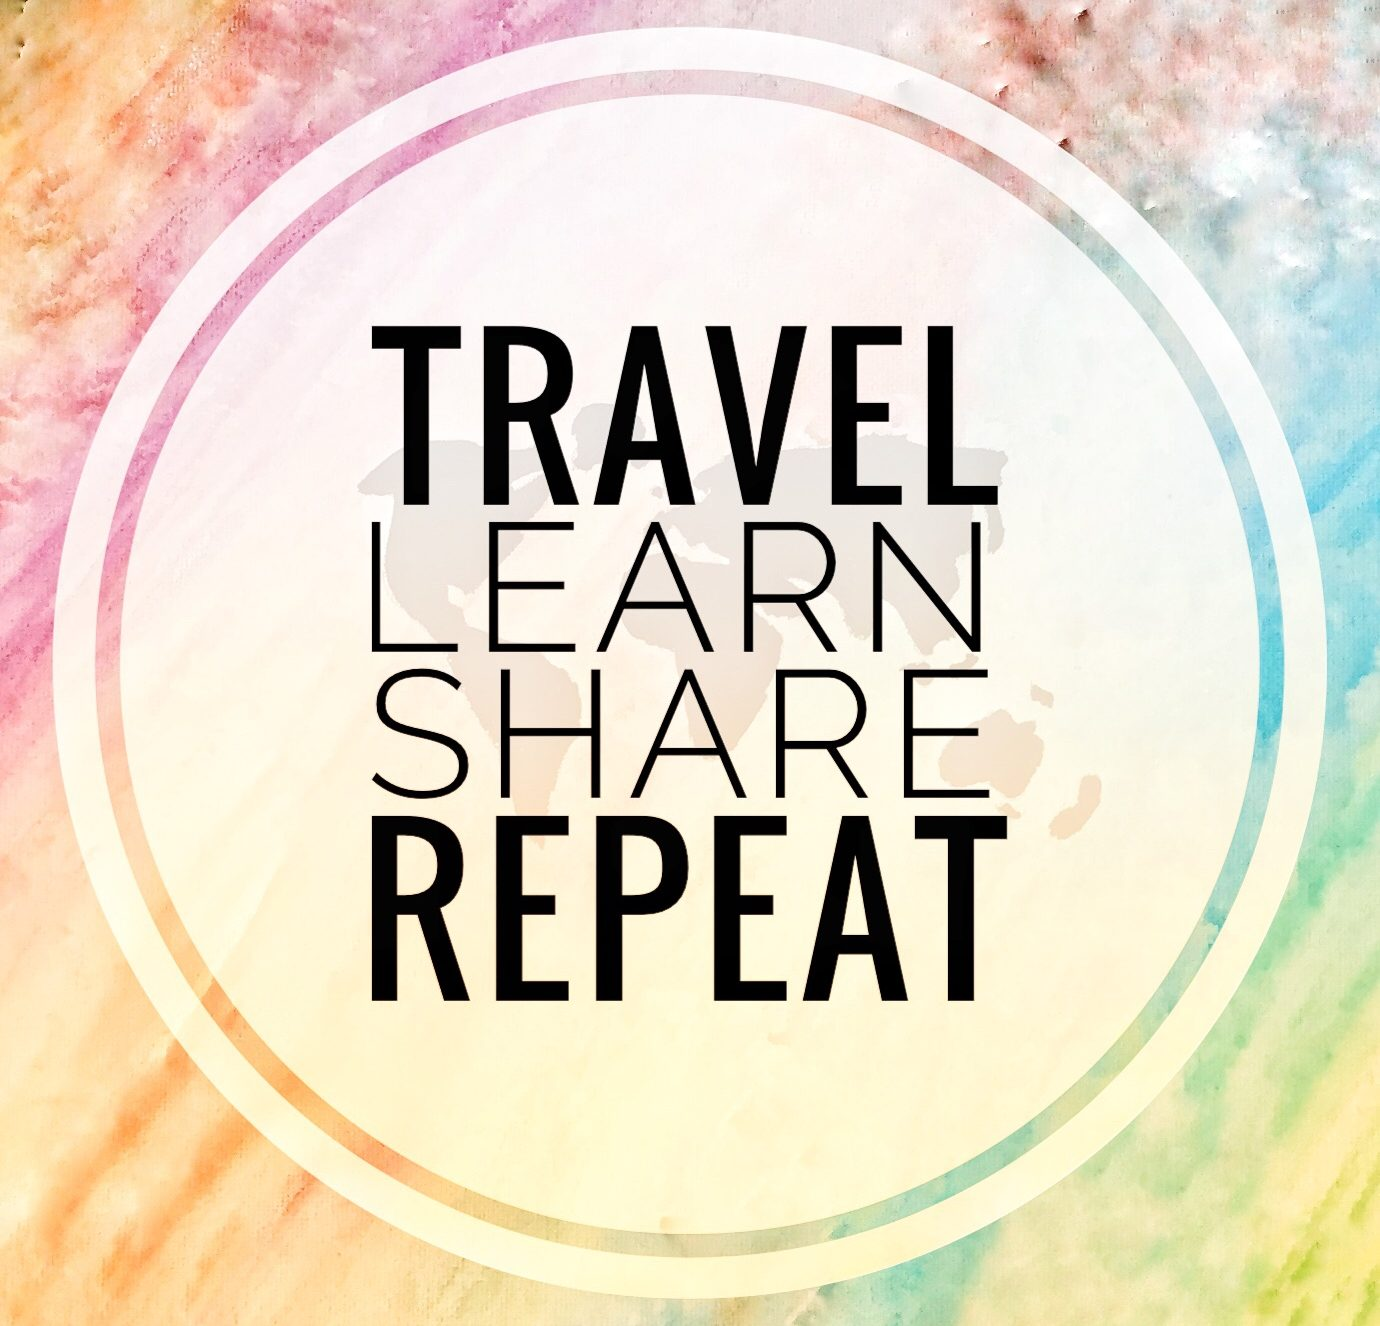 Logo of Travel, Learn, Share, Repeat